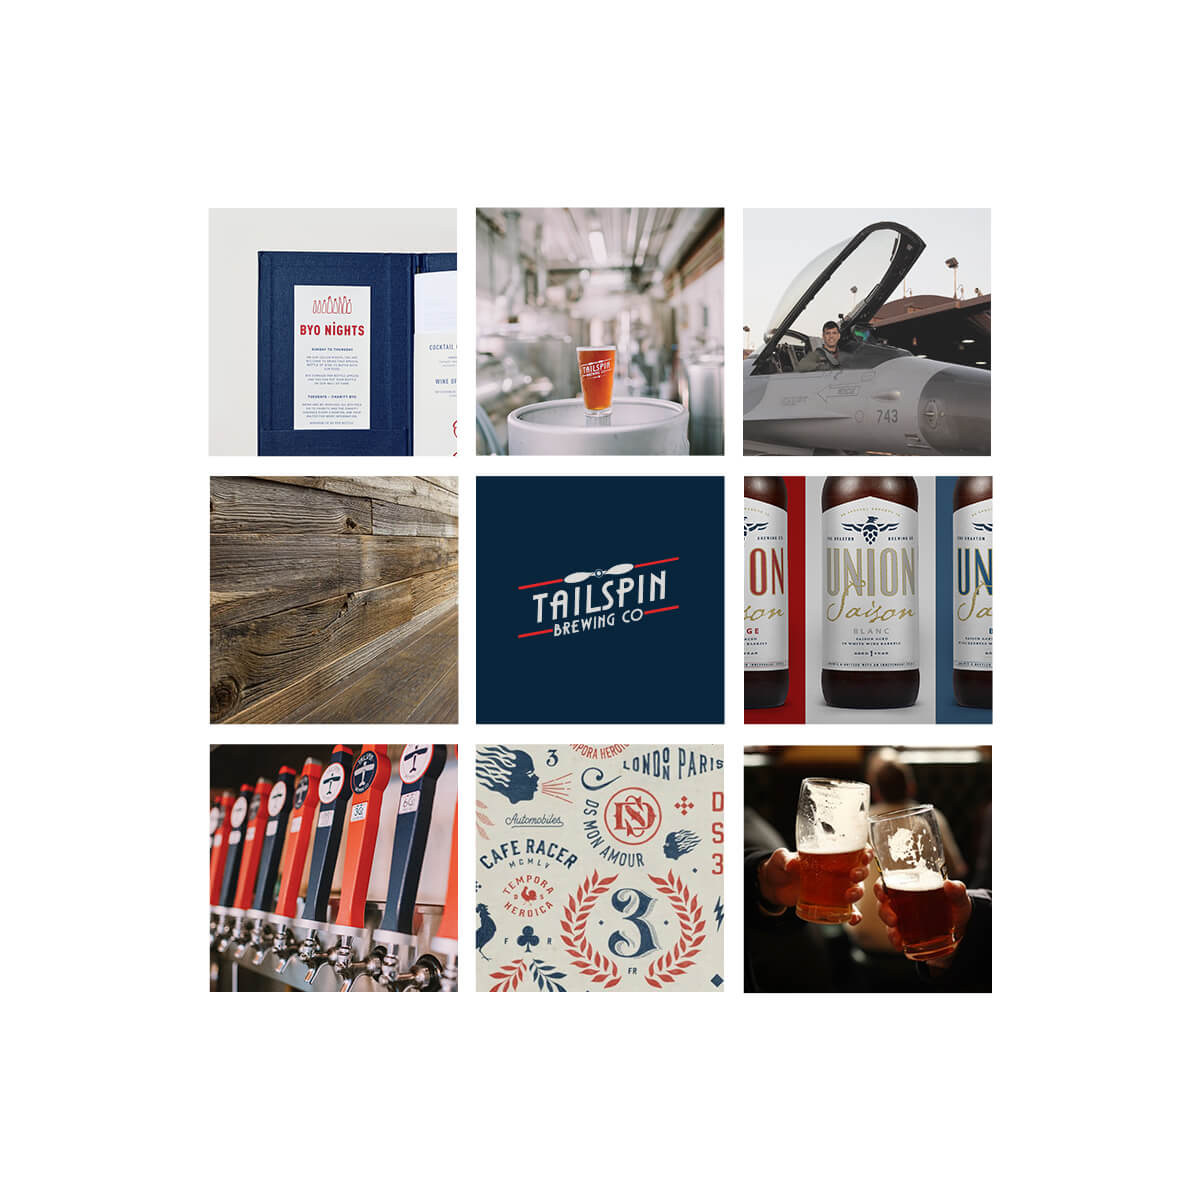 Copperheart-Creative-Branding-Tailspin-Brewing-Beer-Brewery-Moodboard-Inspiration-Design.jpg